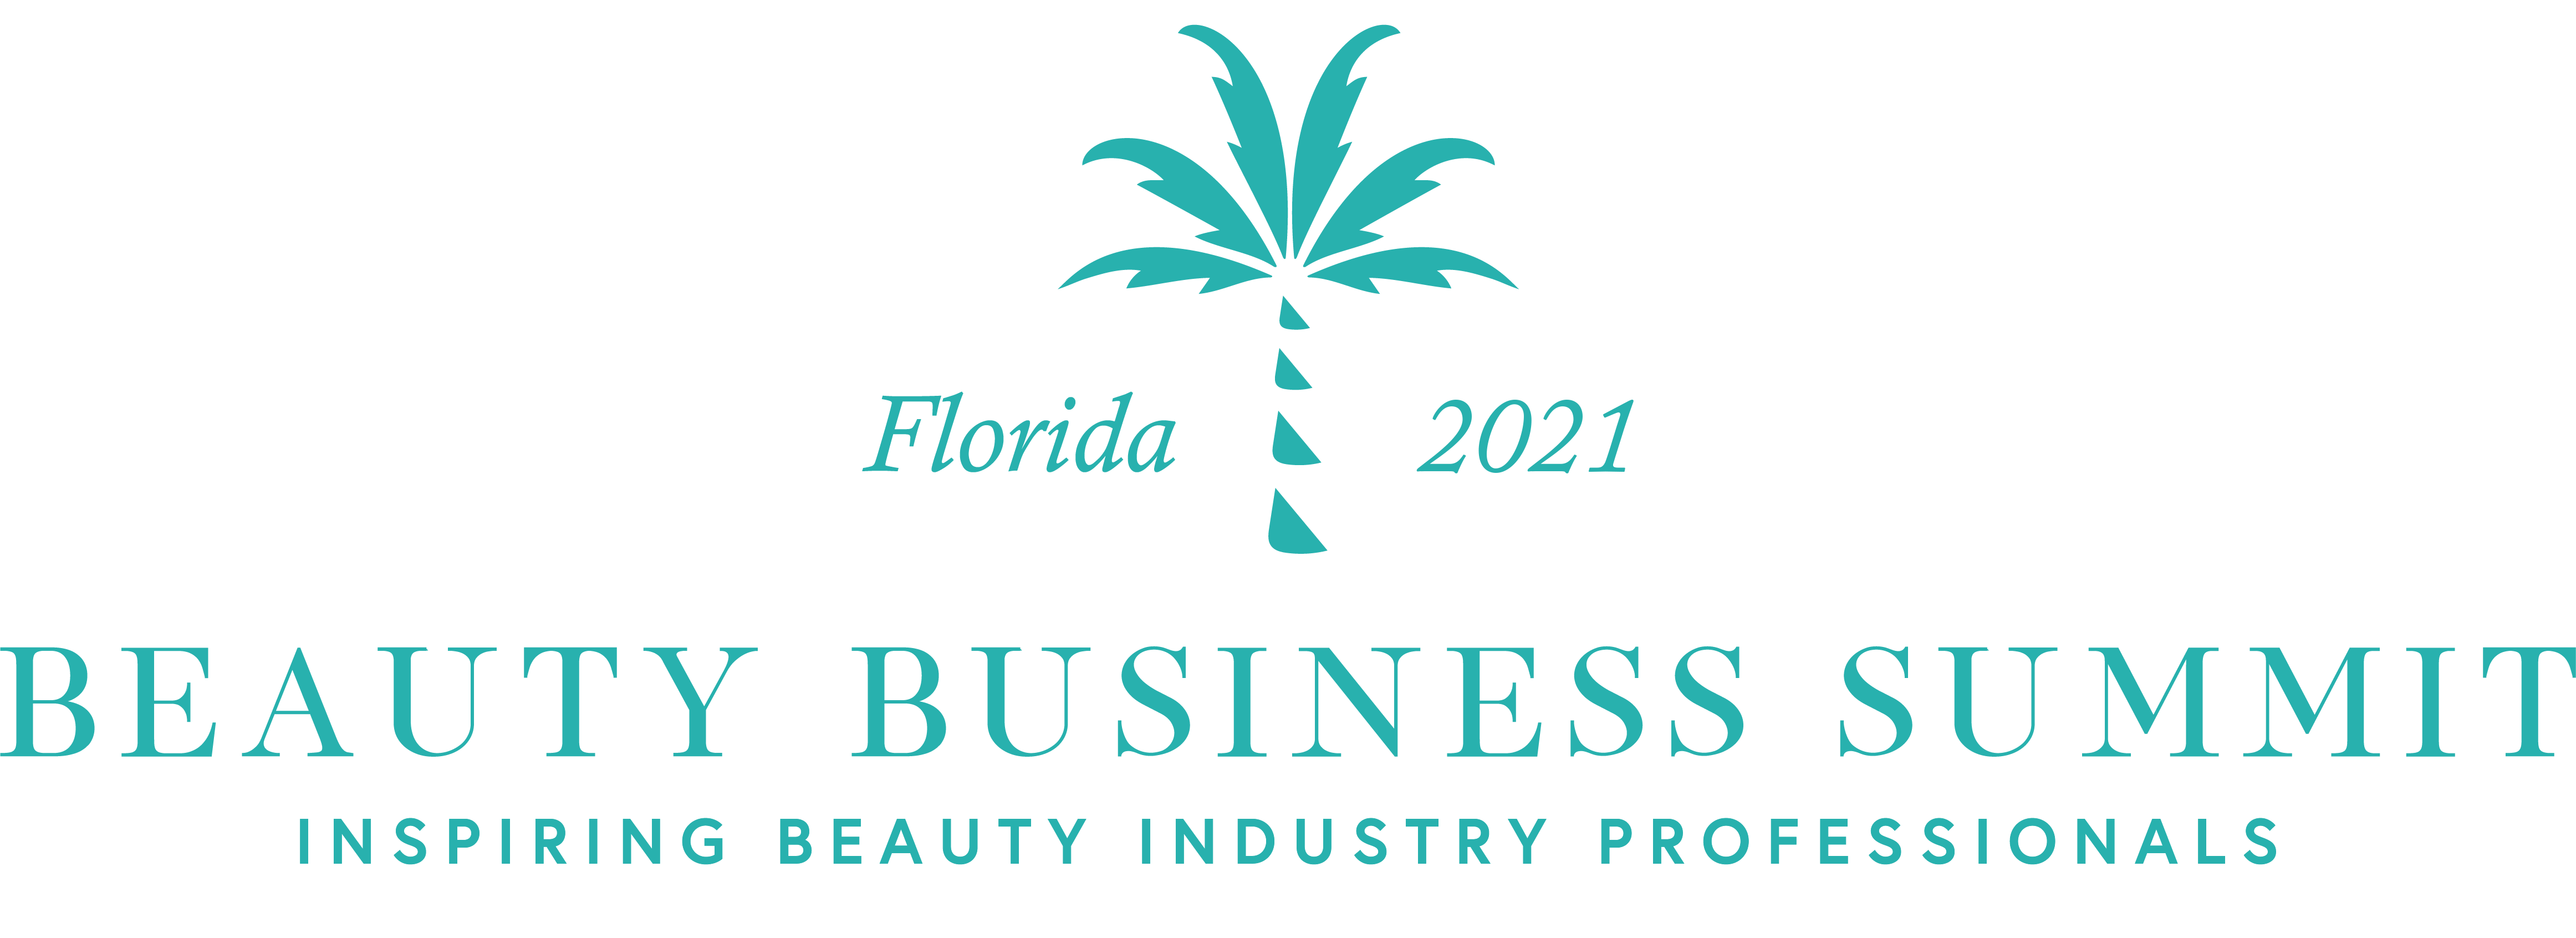 Beauty Business Summit 2021